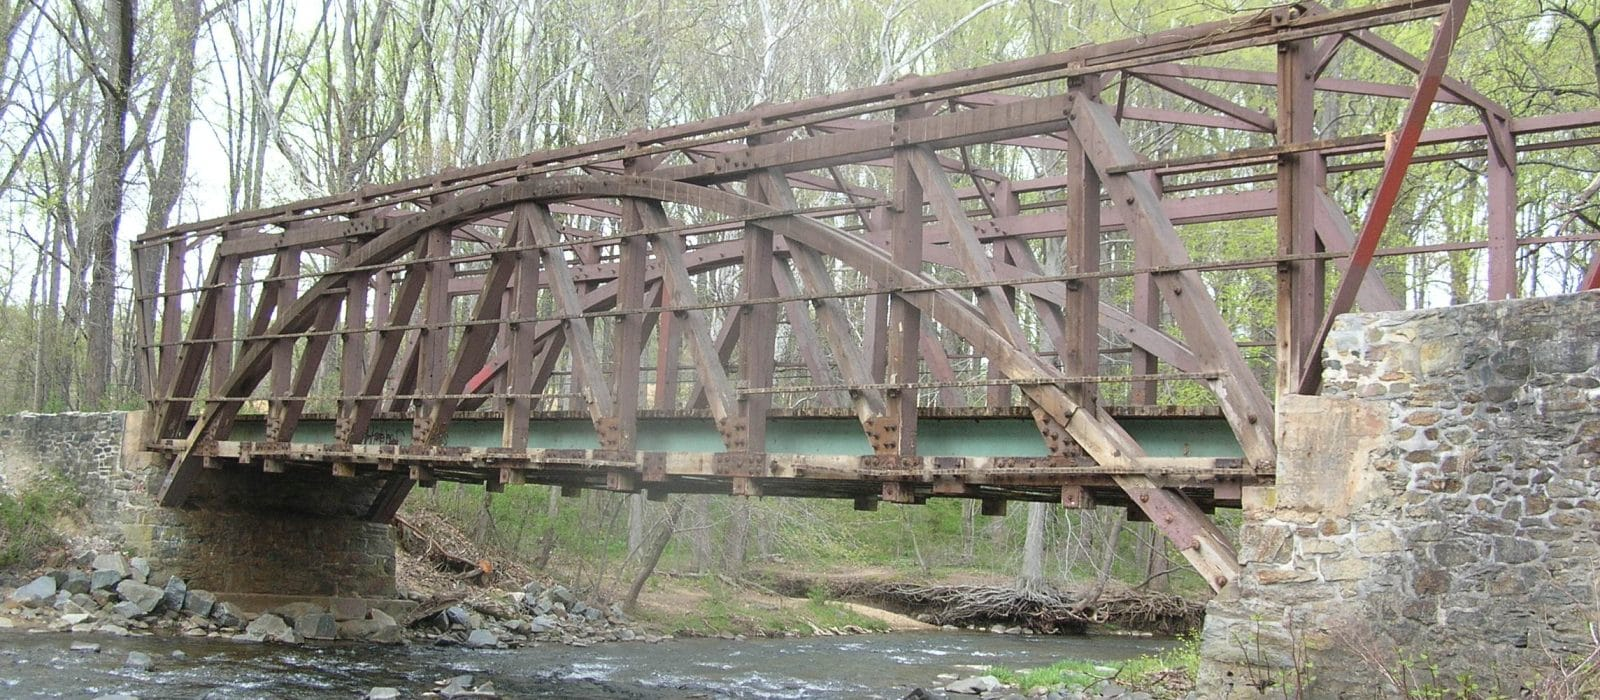 Jericho Road Covered Bridge Rehabilitation exterior